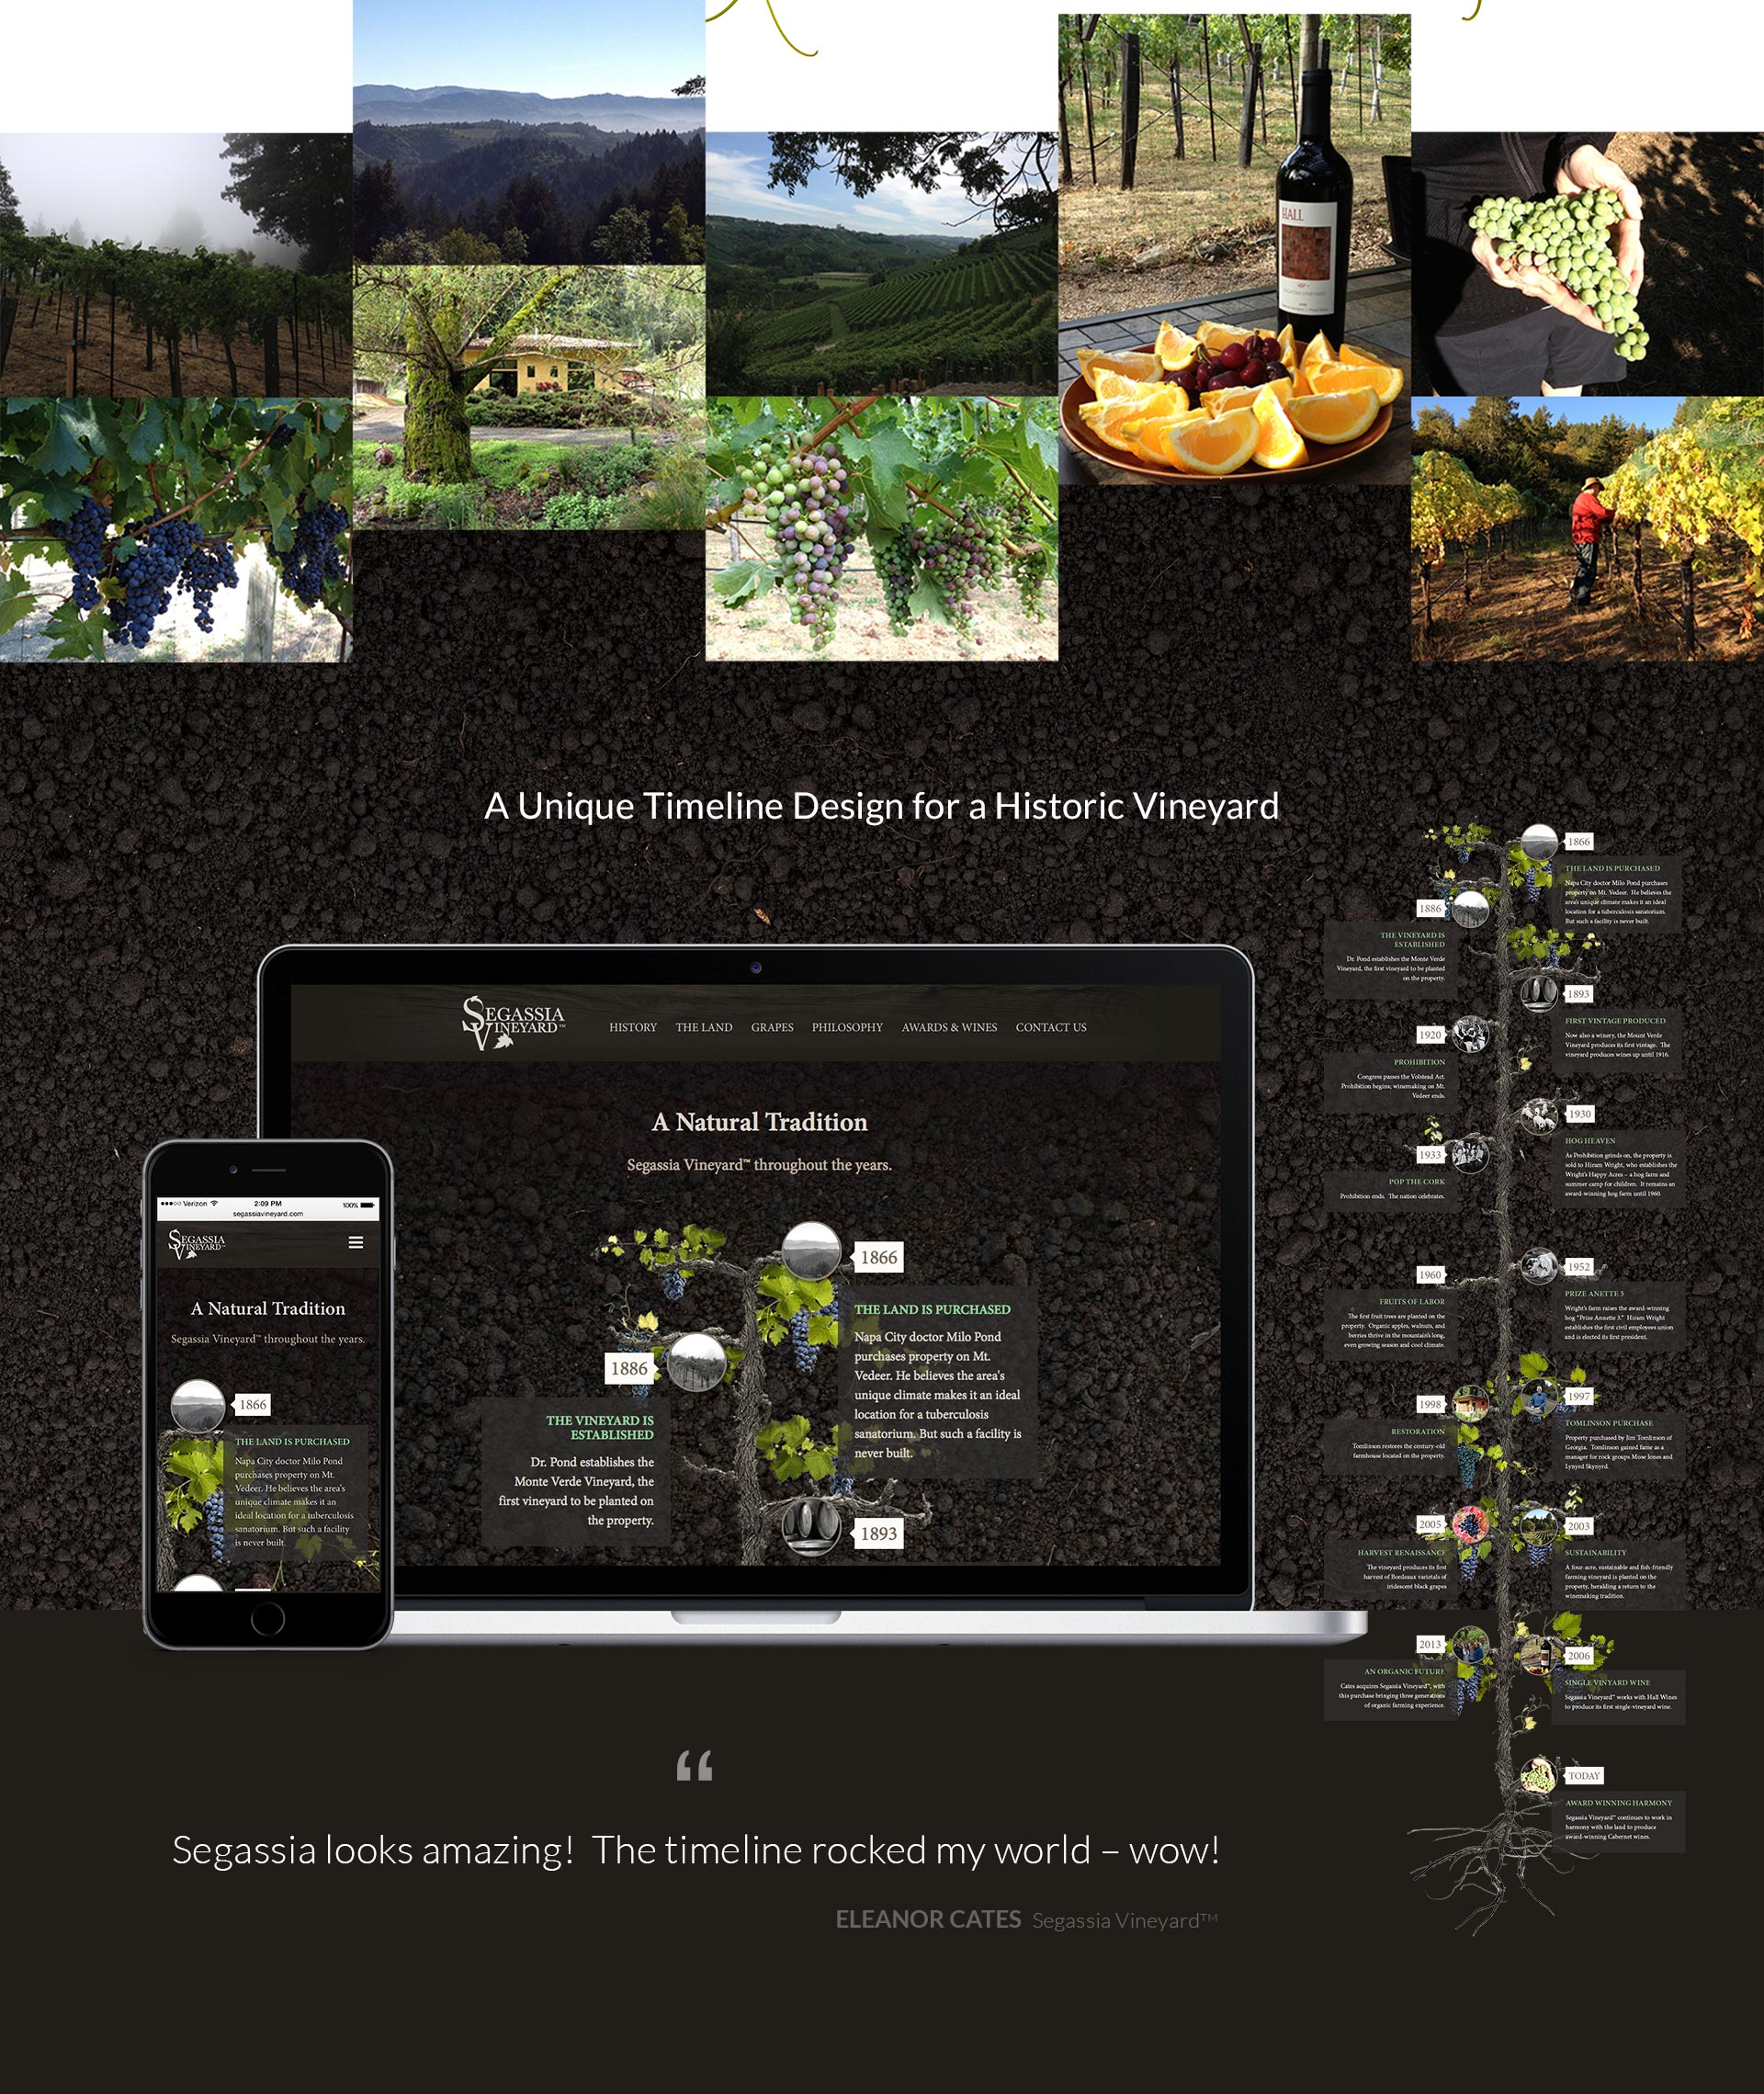 Segassia-Vineyard-Timeline-Design